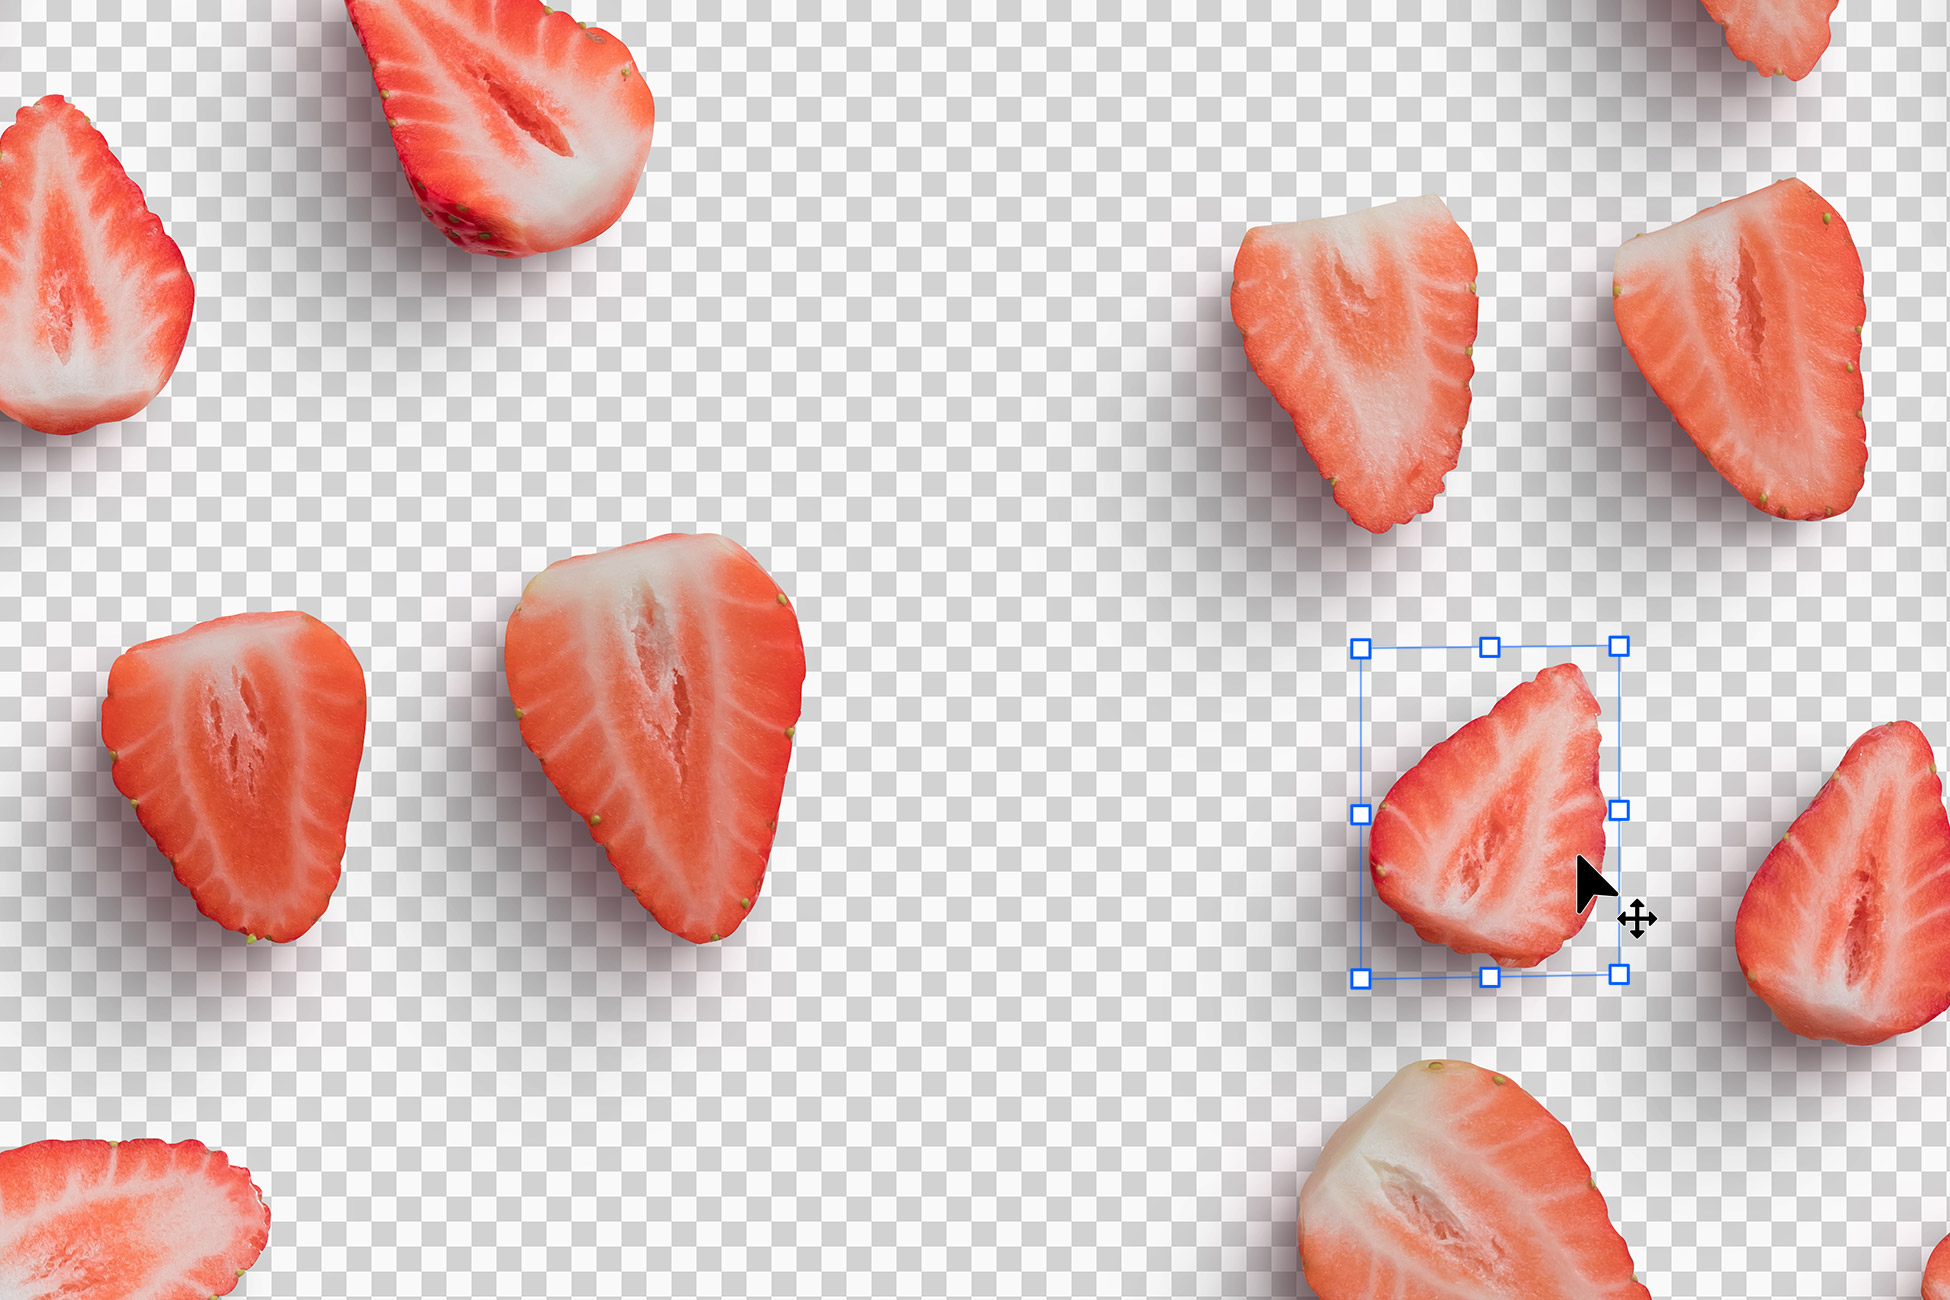 Strawberries Fruit Isolated Objects